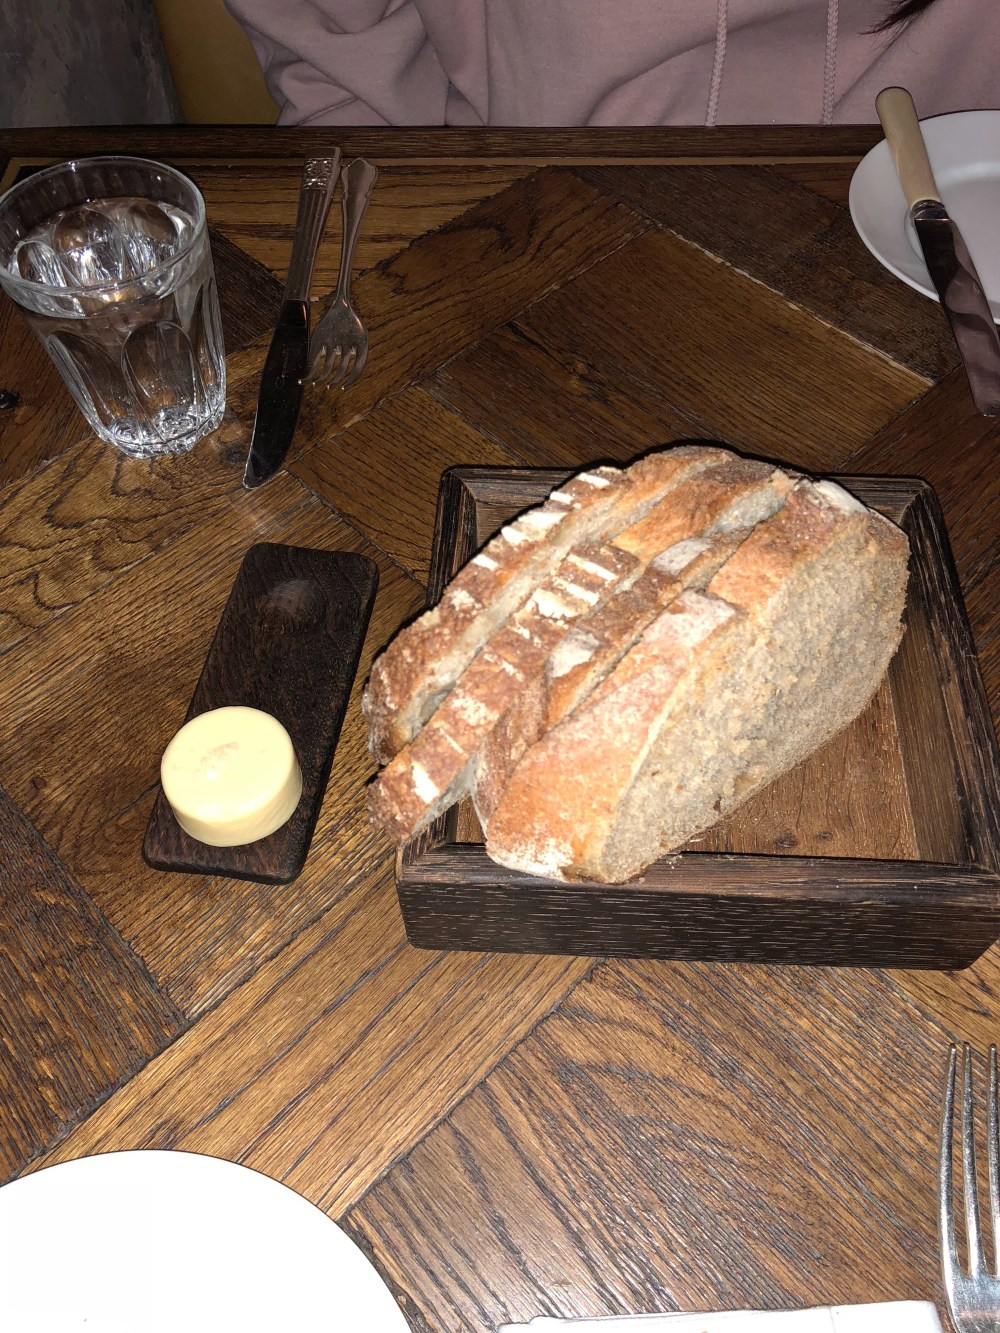 LondonsDiningCouple Social Eating House Review